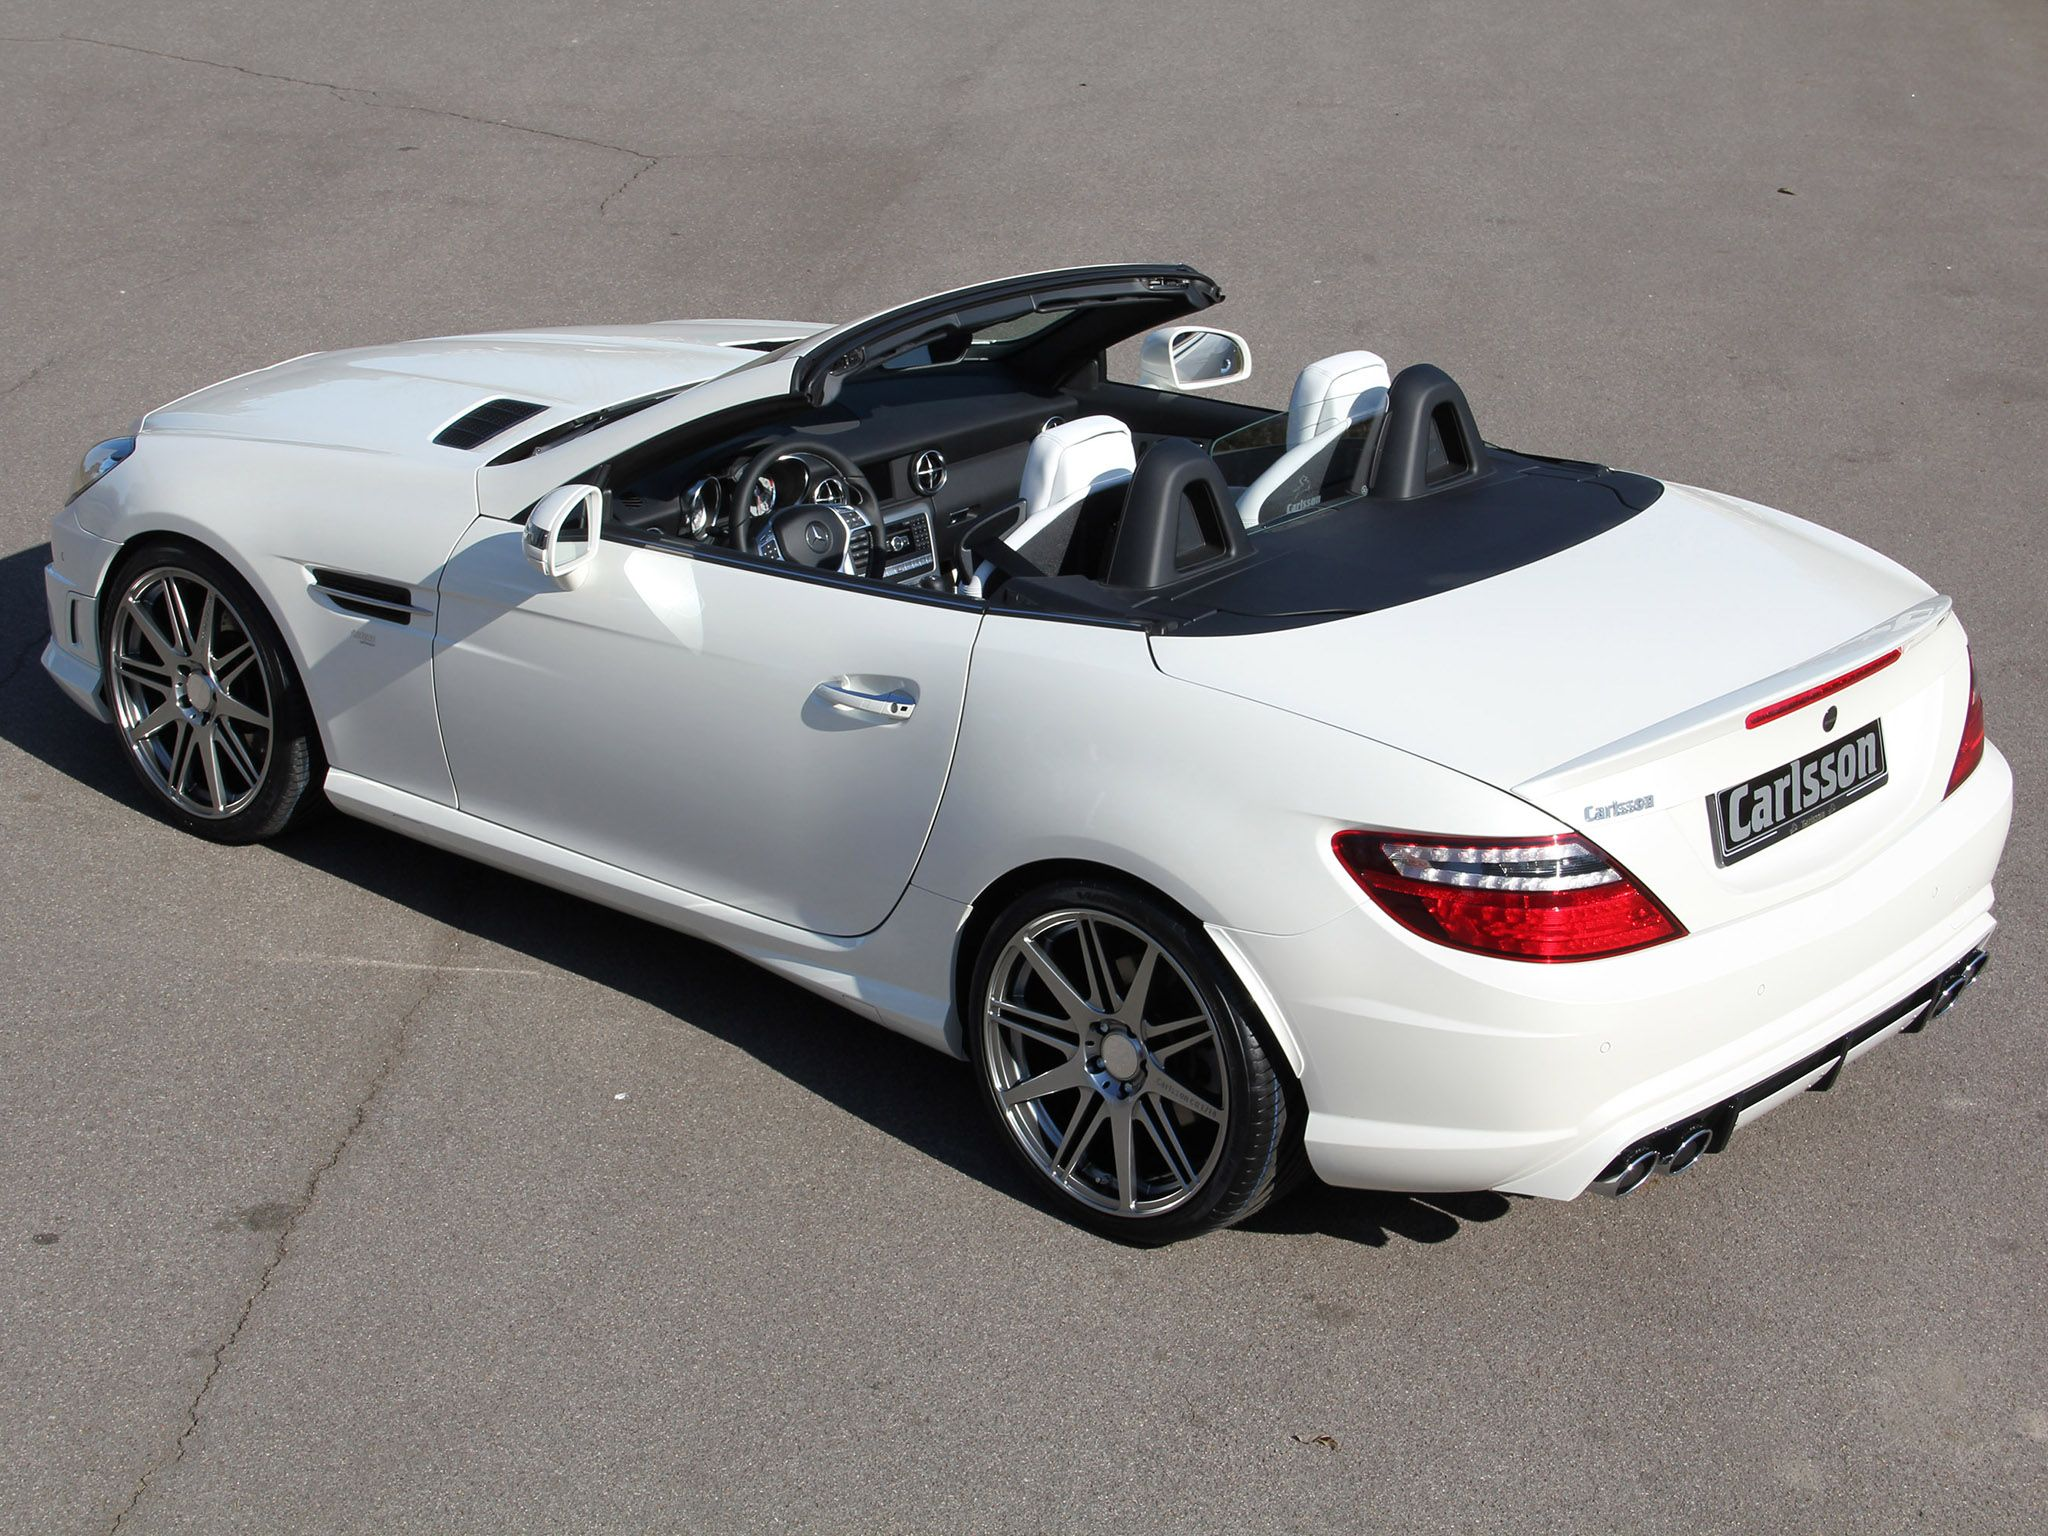 mercedes slk 350 r172 google search mercedes slk 350. Black Bedroom Furniture Sets. Home Design Ideas